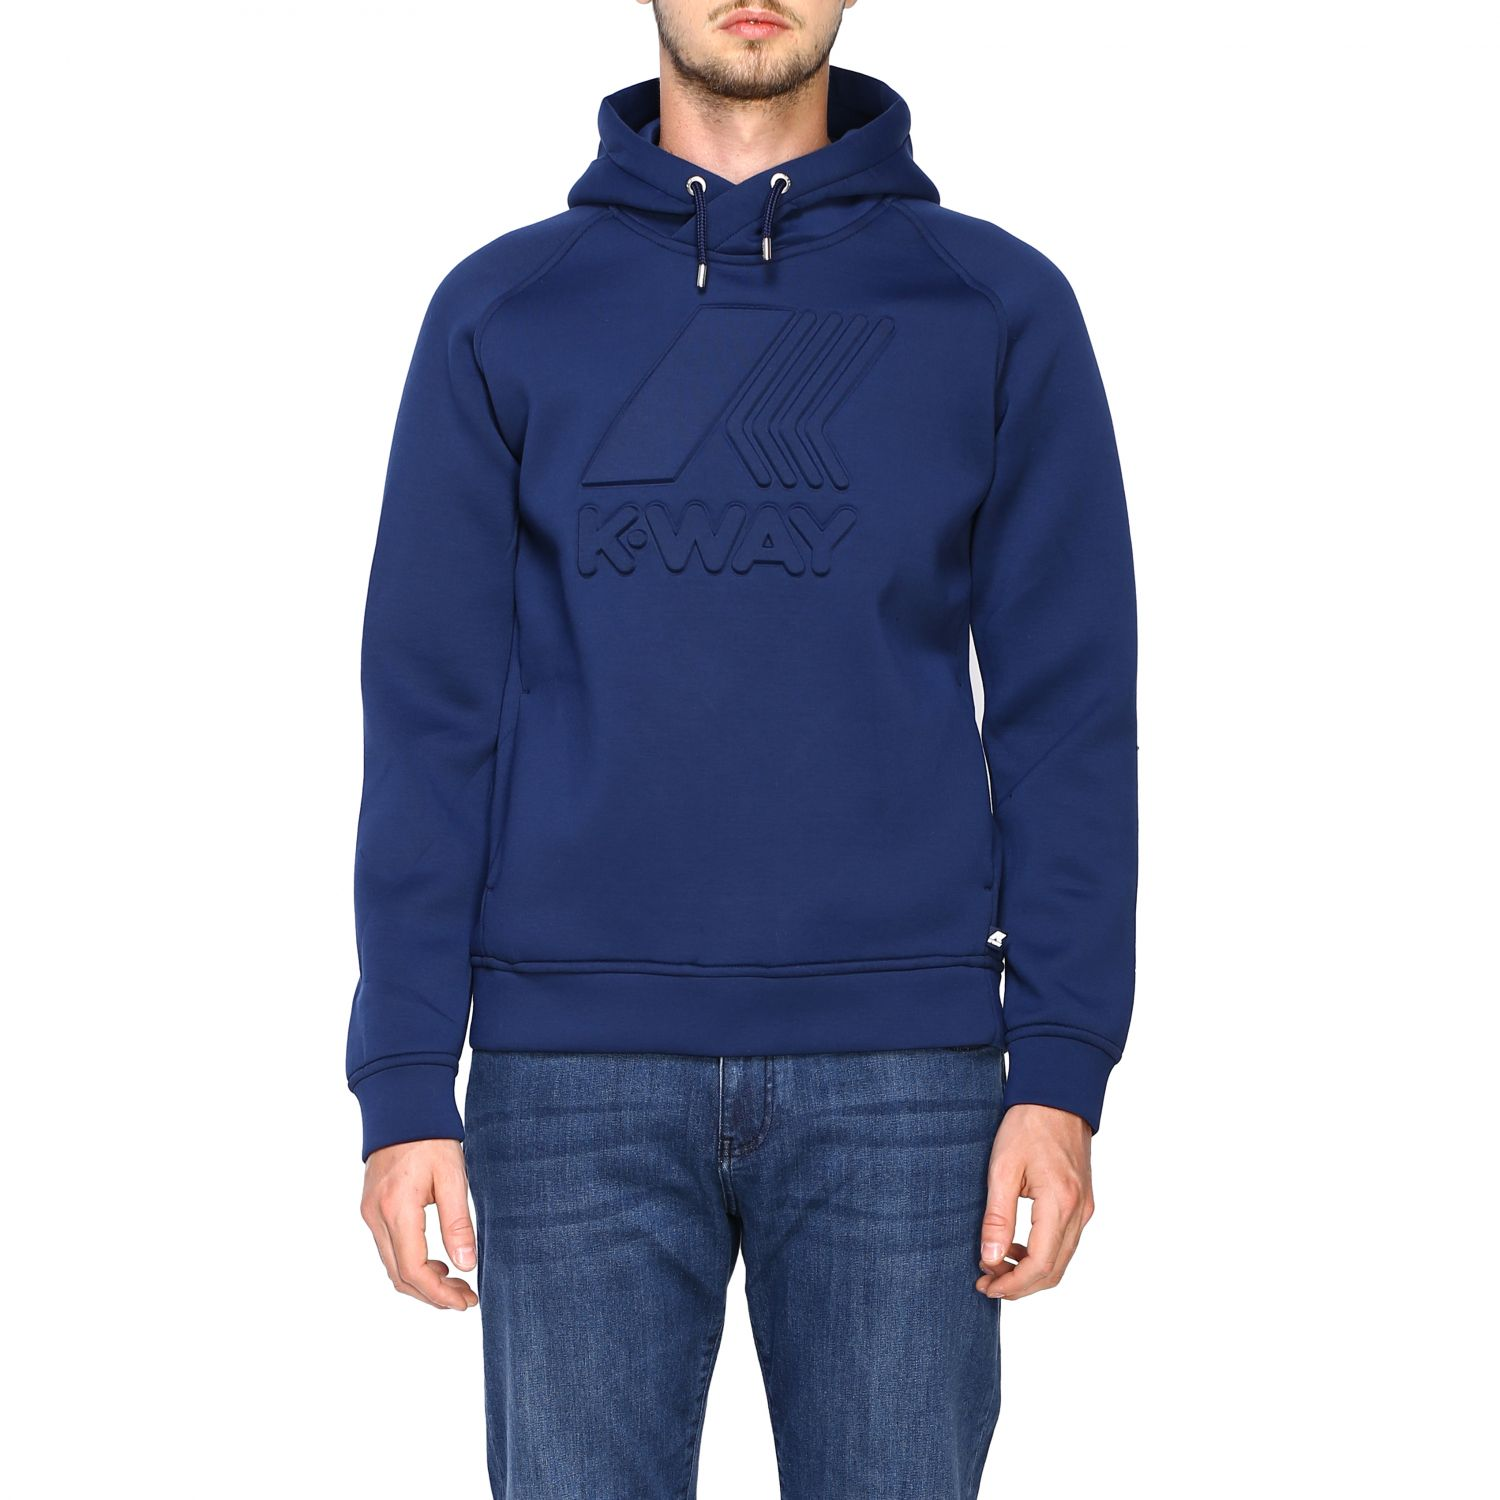 Sweatshirt K-Way: Jumper men K-way blue 1